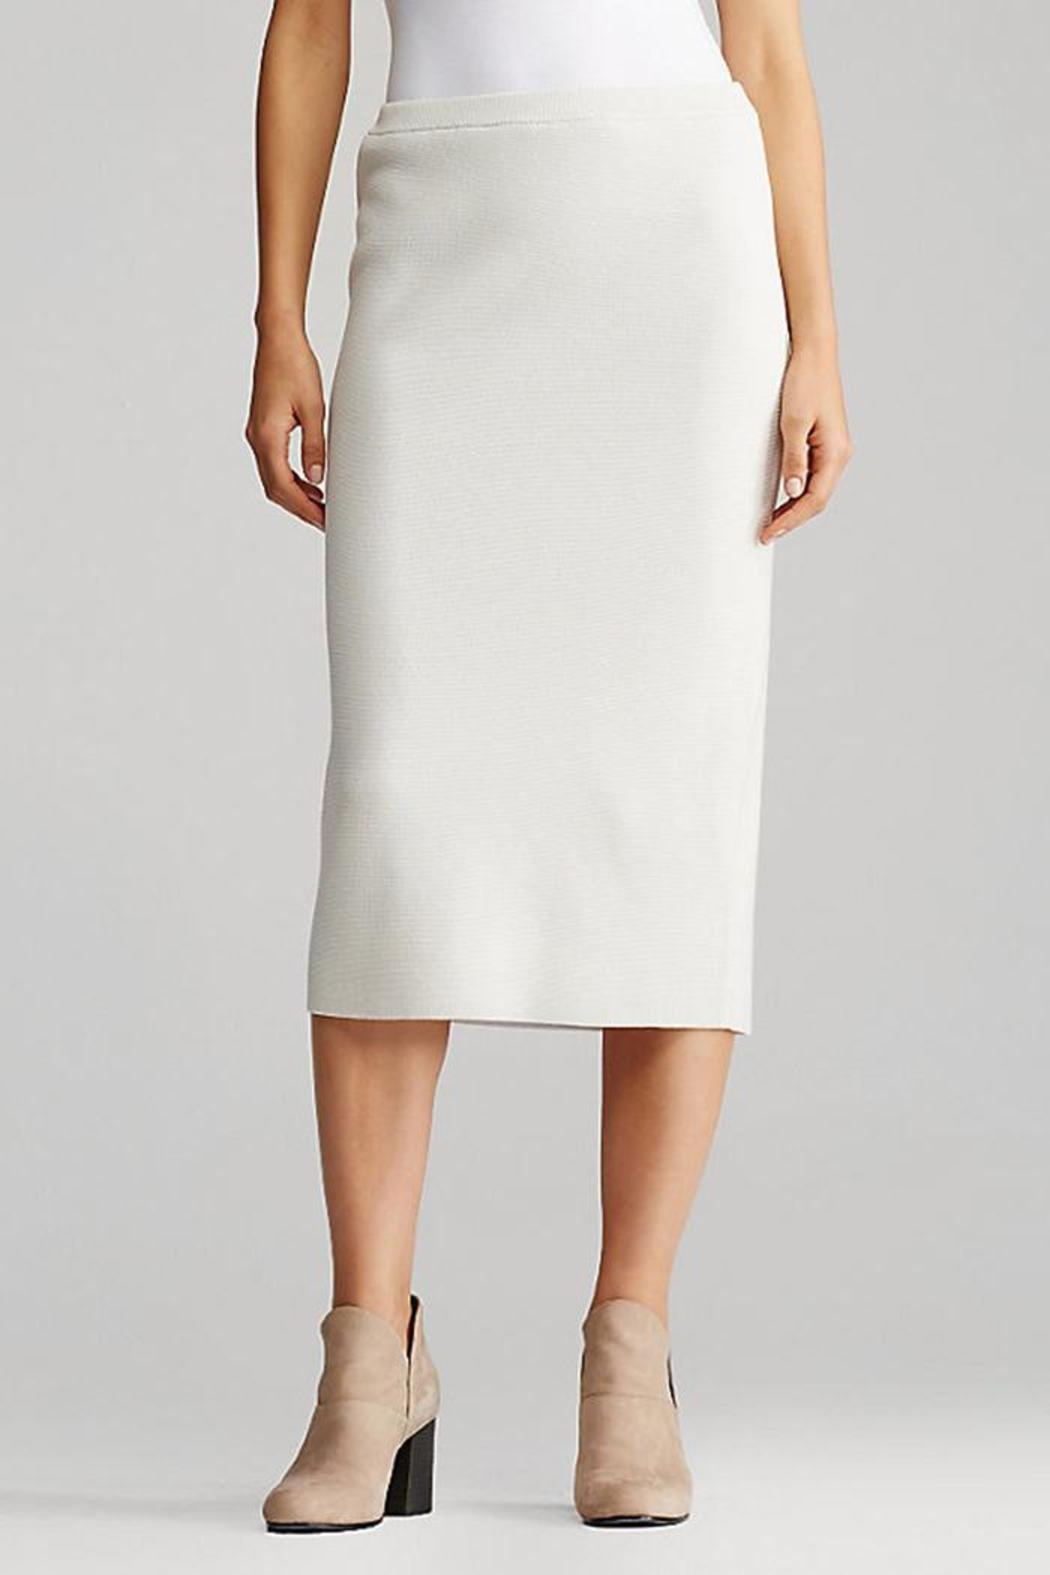 Eileen Fisher Calf-Length Pencil Skirt from District of Columbia ...